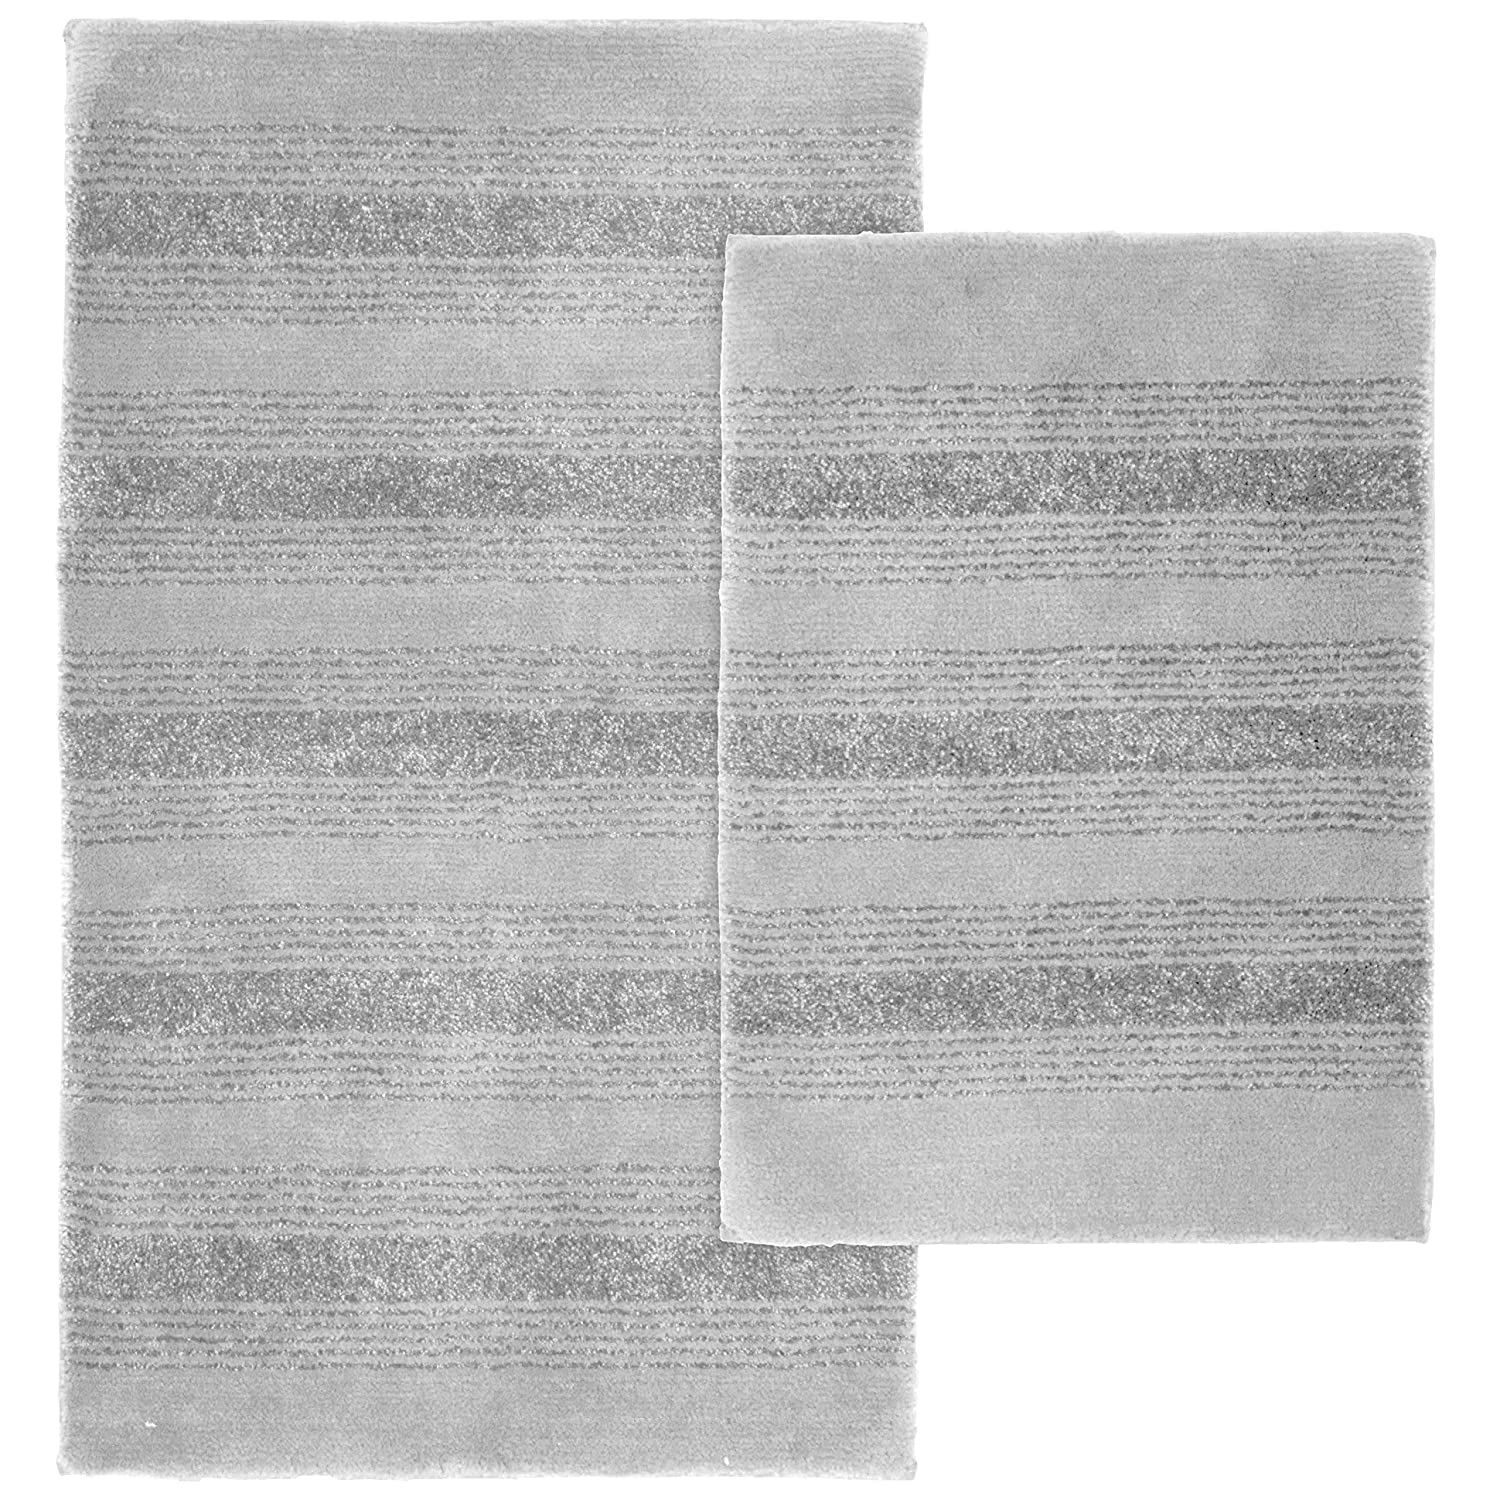 Amazoncom Garland Rug Piece Essence Nylon Washable Bathroom - Black and white tweed bath rug for bathroom decorating ideas